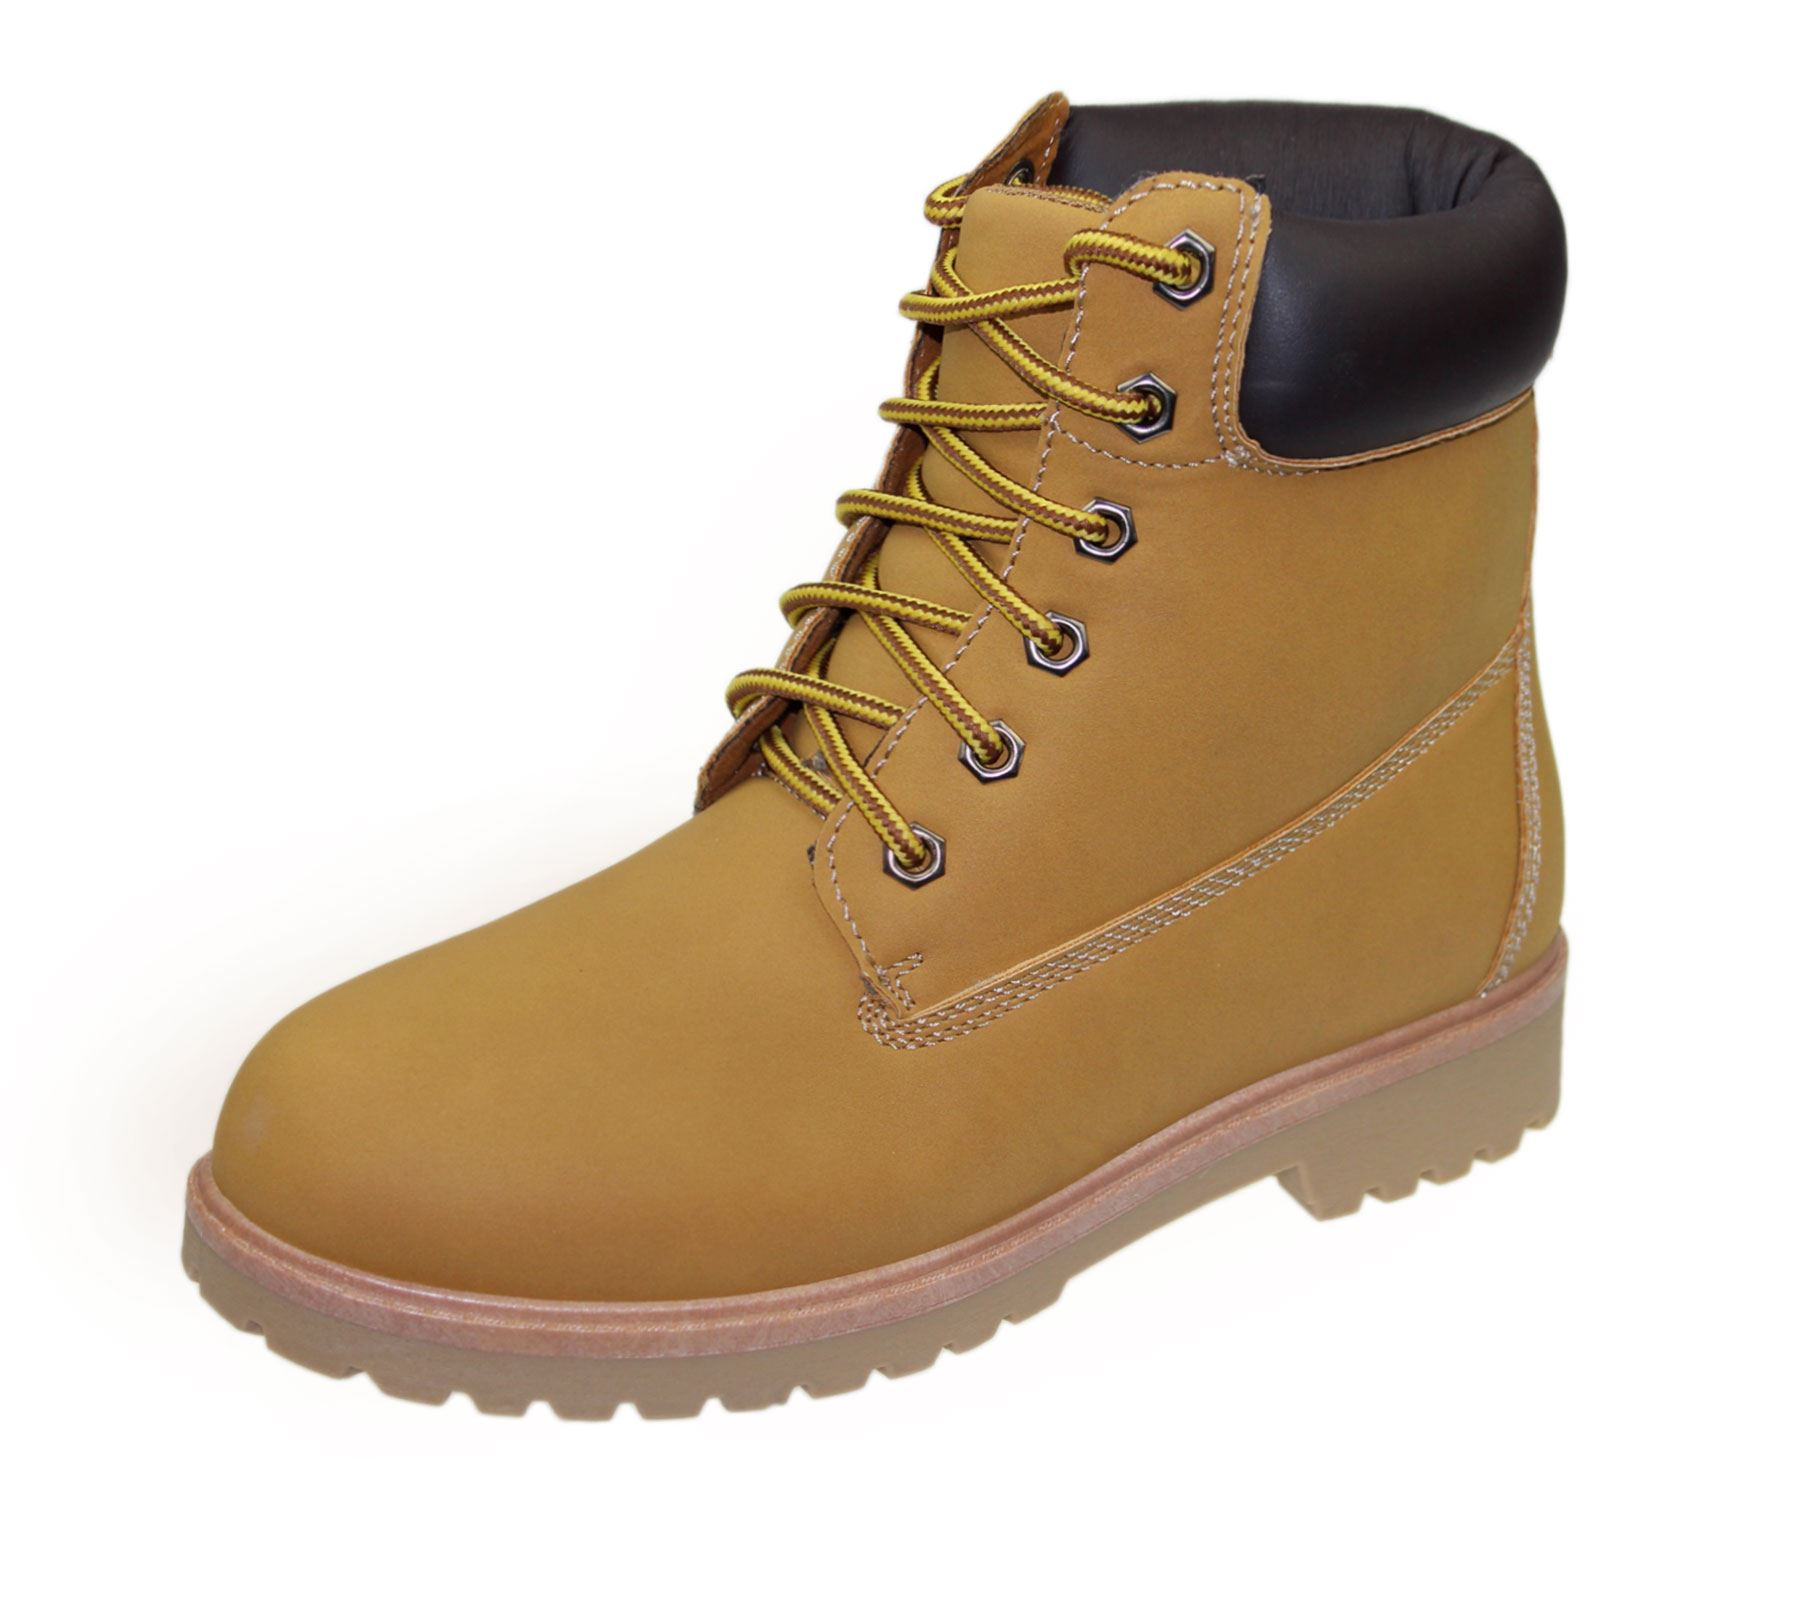 Womens High Top Boots Hiking Desert Trail Combat Ladies Ankle Work ... 020a6df08a